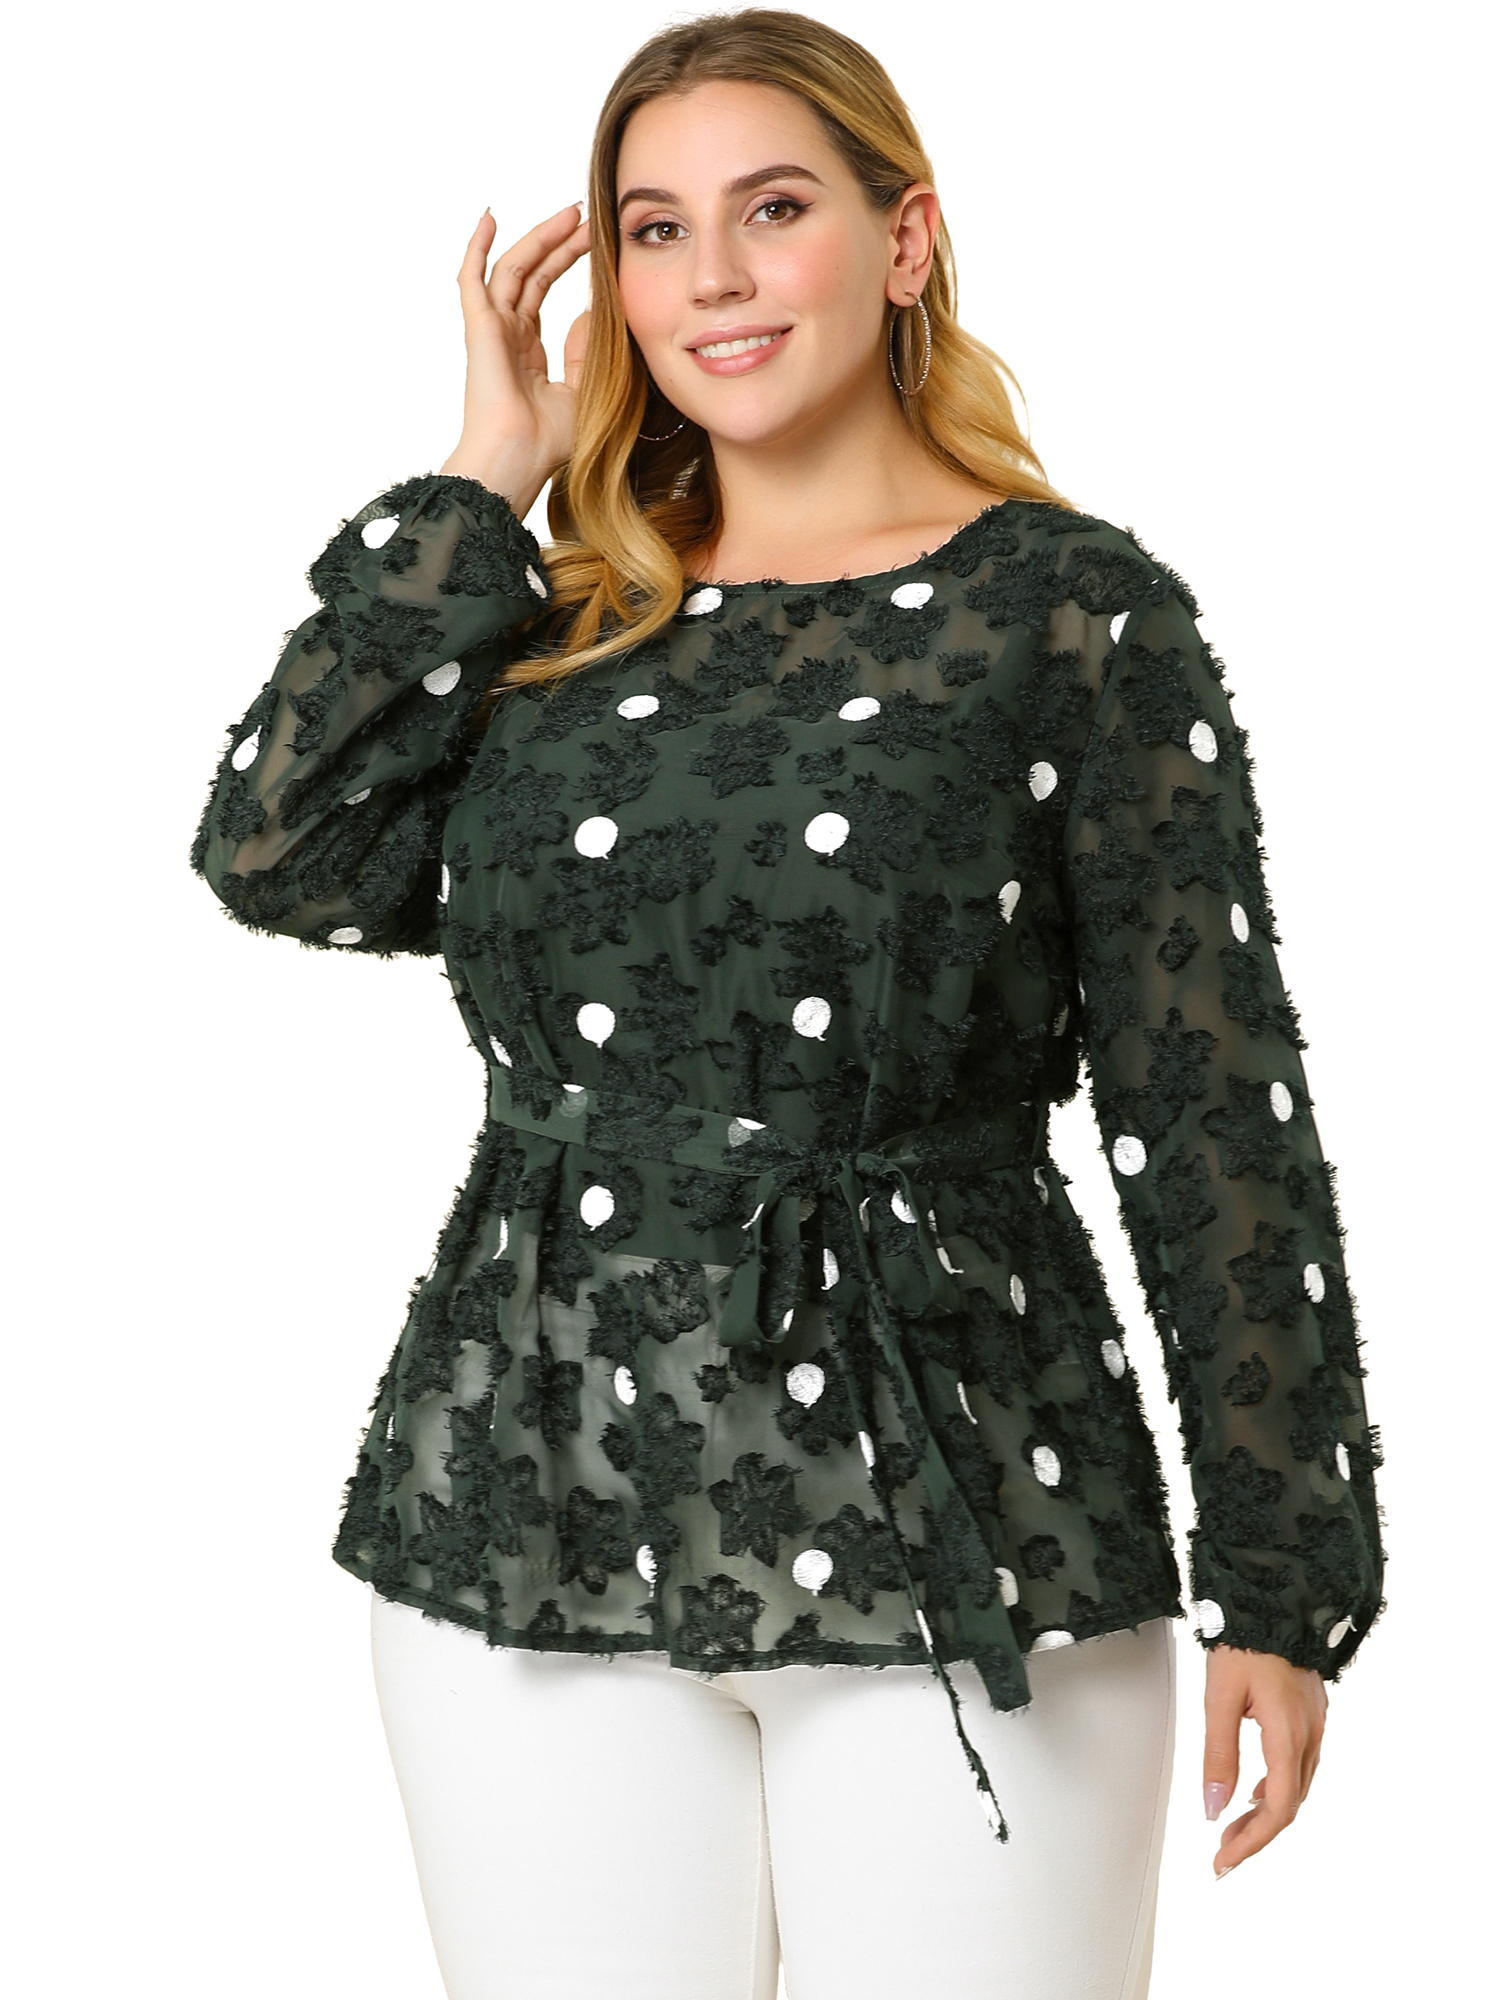 Women's Plus Size Belted High Waisted Polka Dots Peplum Mesh Lace Top Green 1X